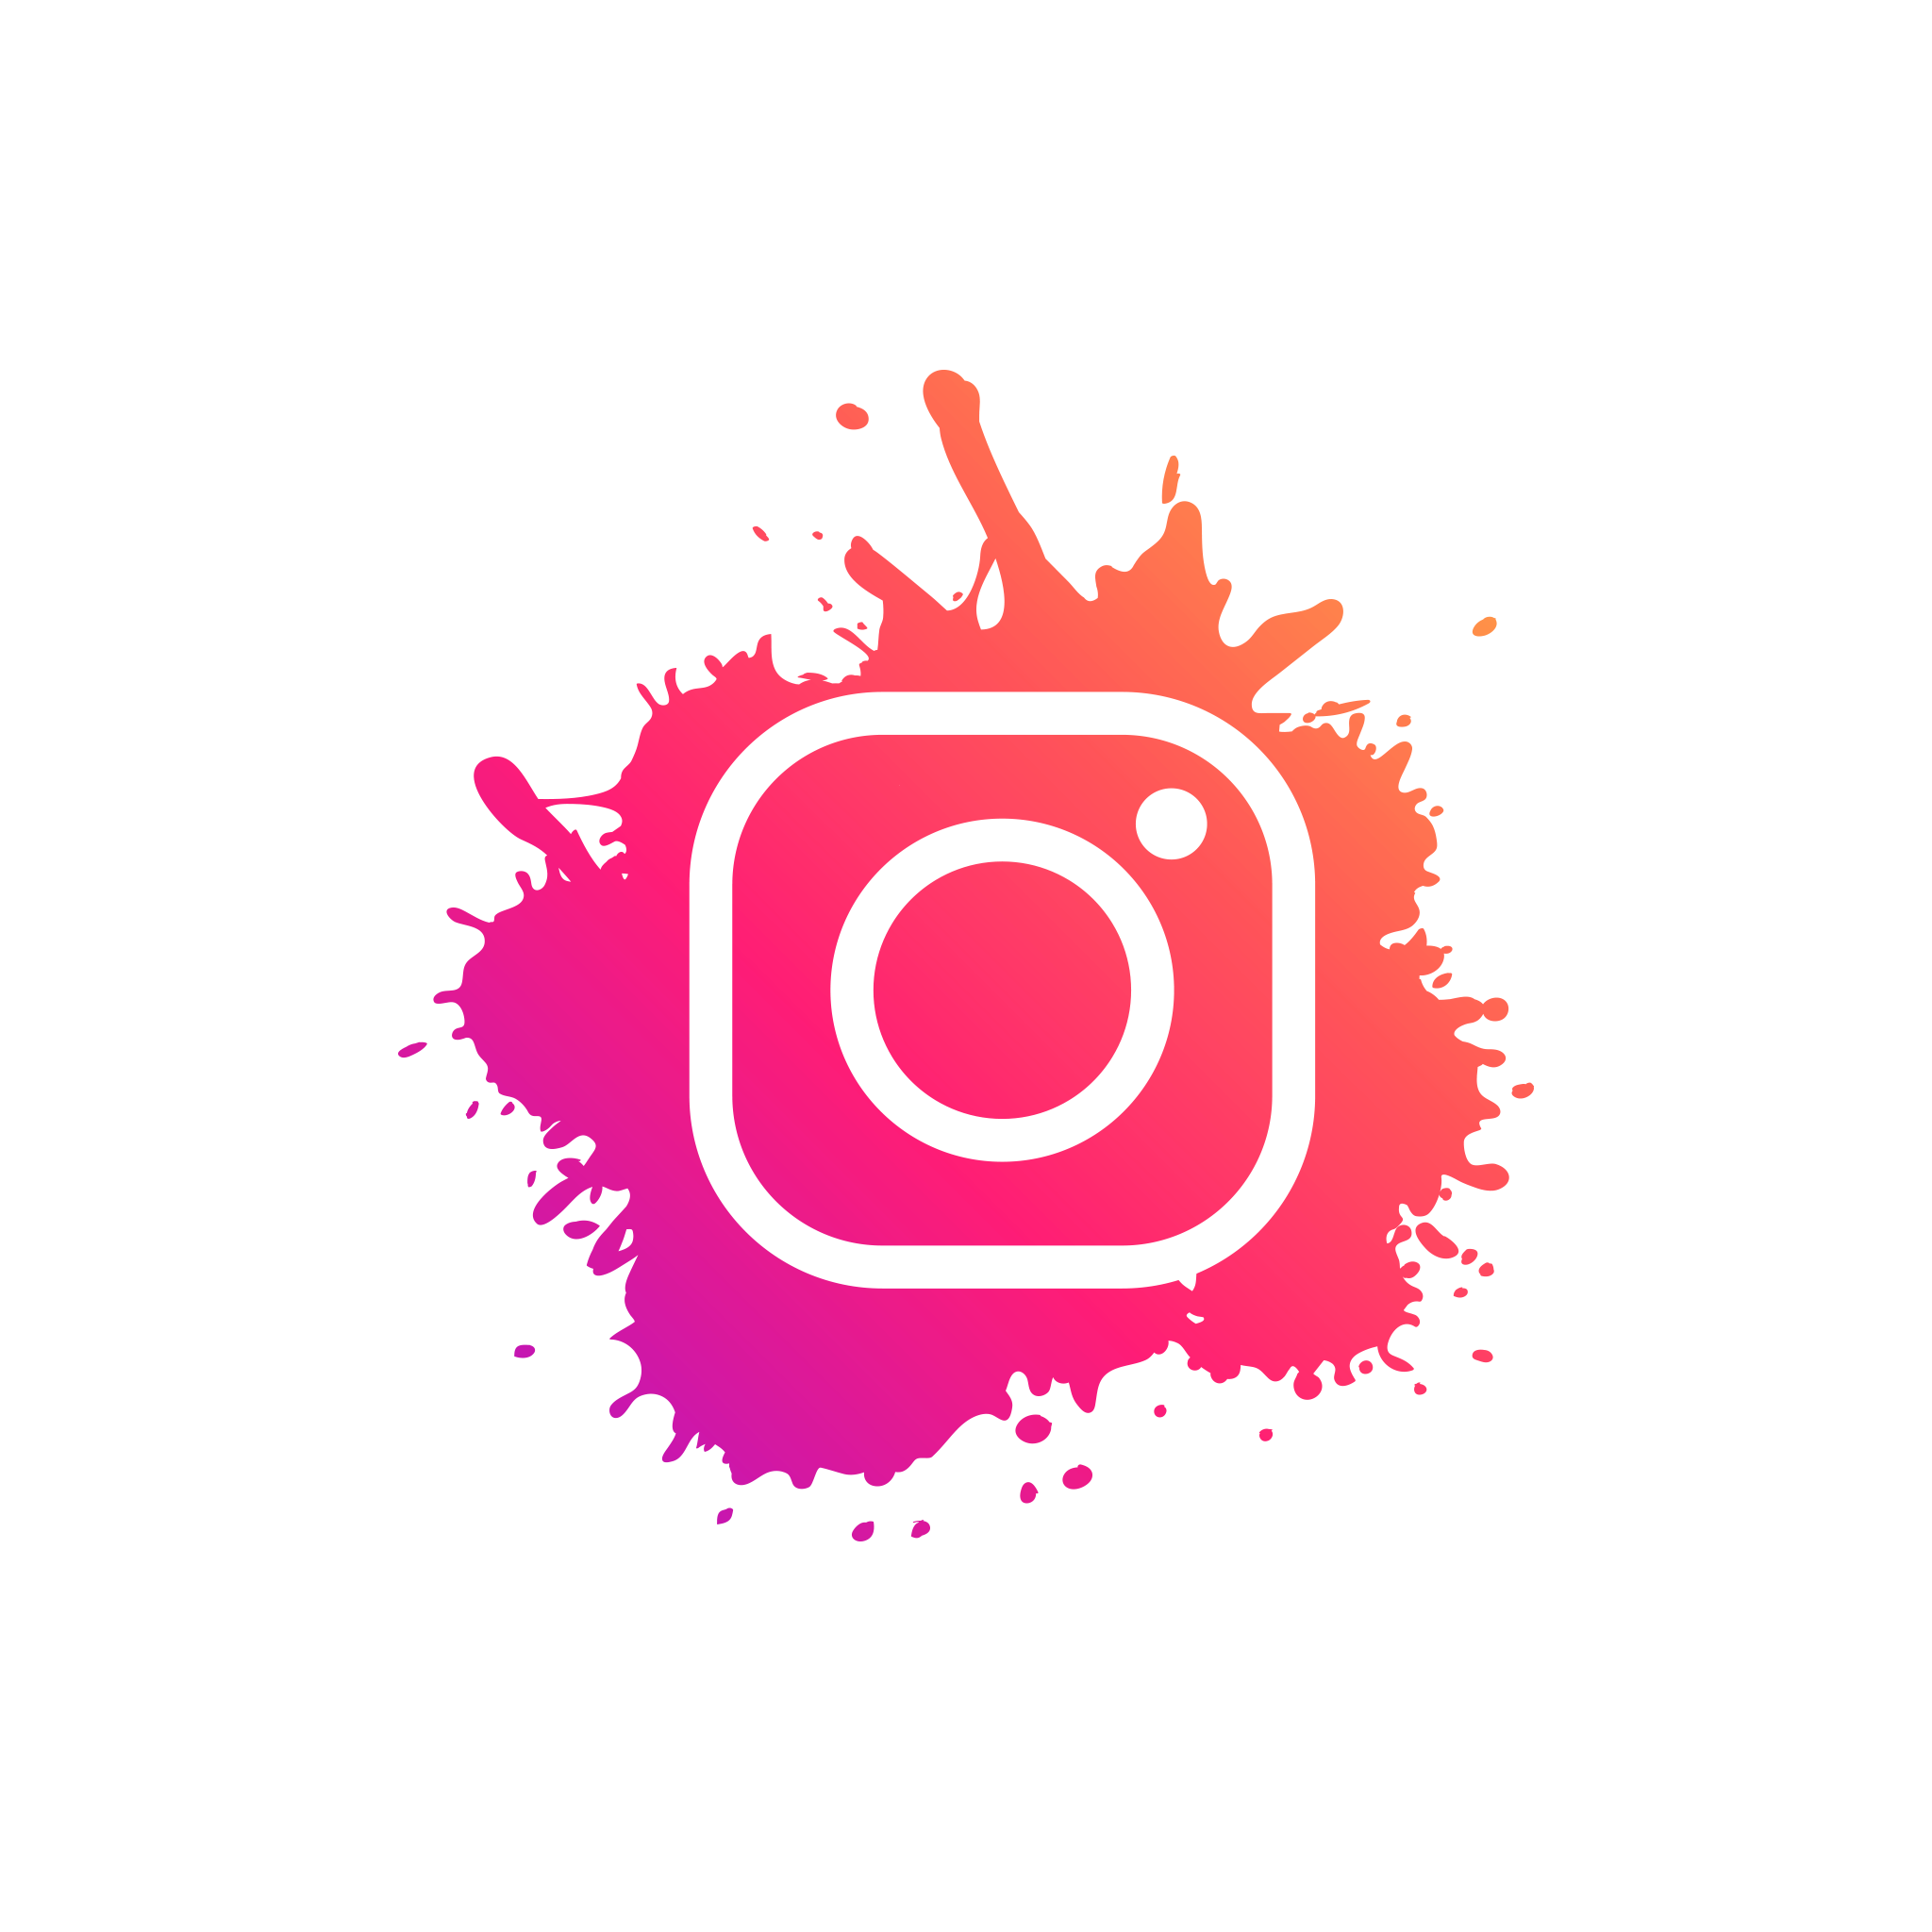 Splash Instagram Icon Png Image Free Download Instagram Symbols New Instagram Logo Instagram Logo